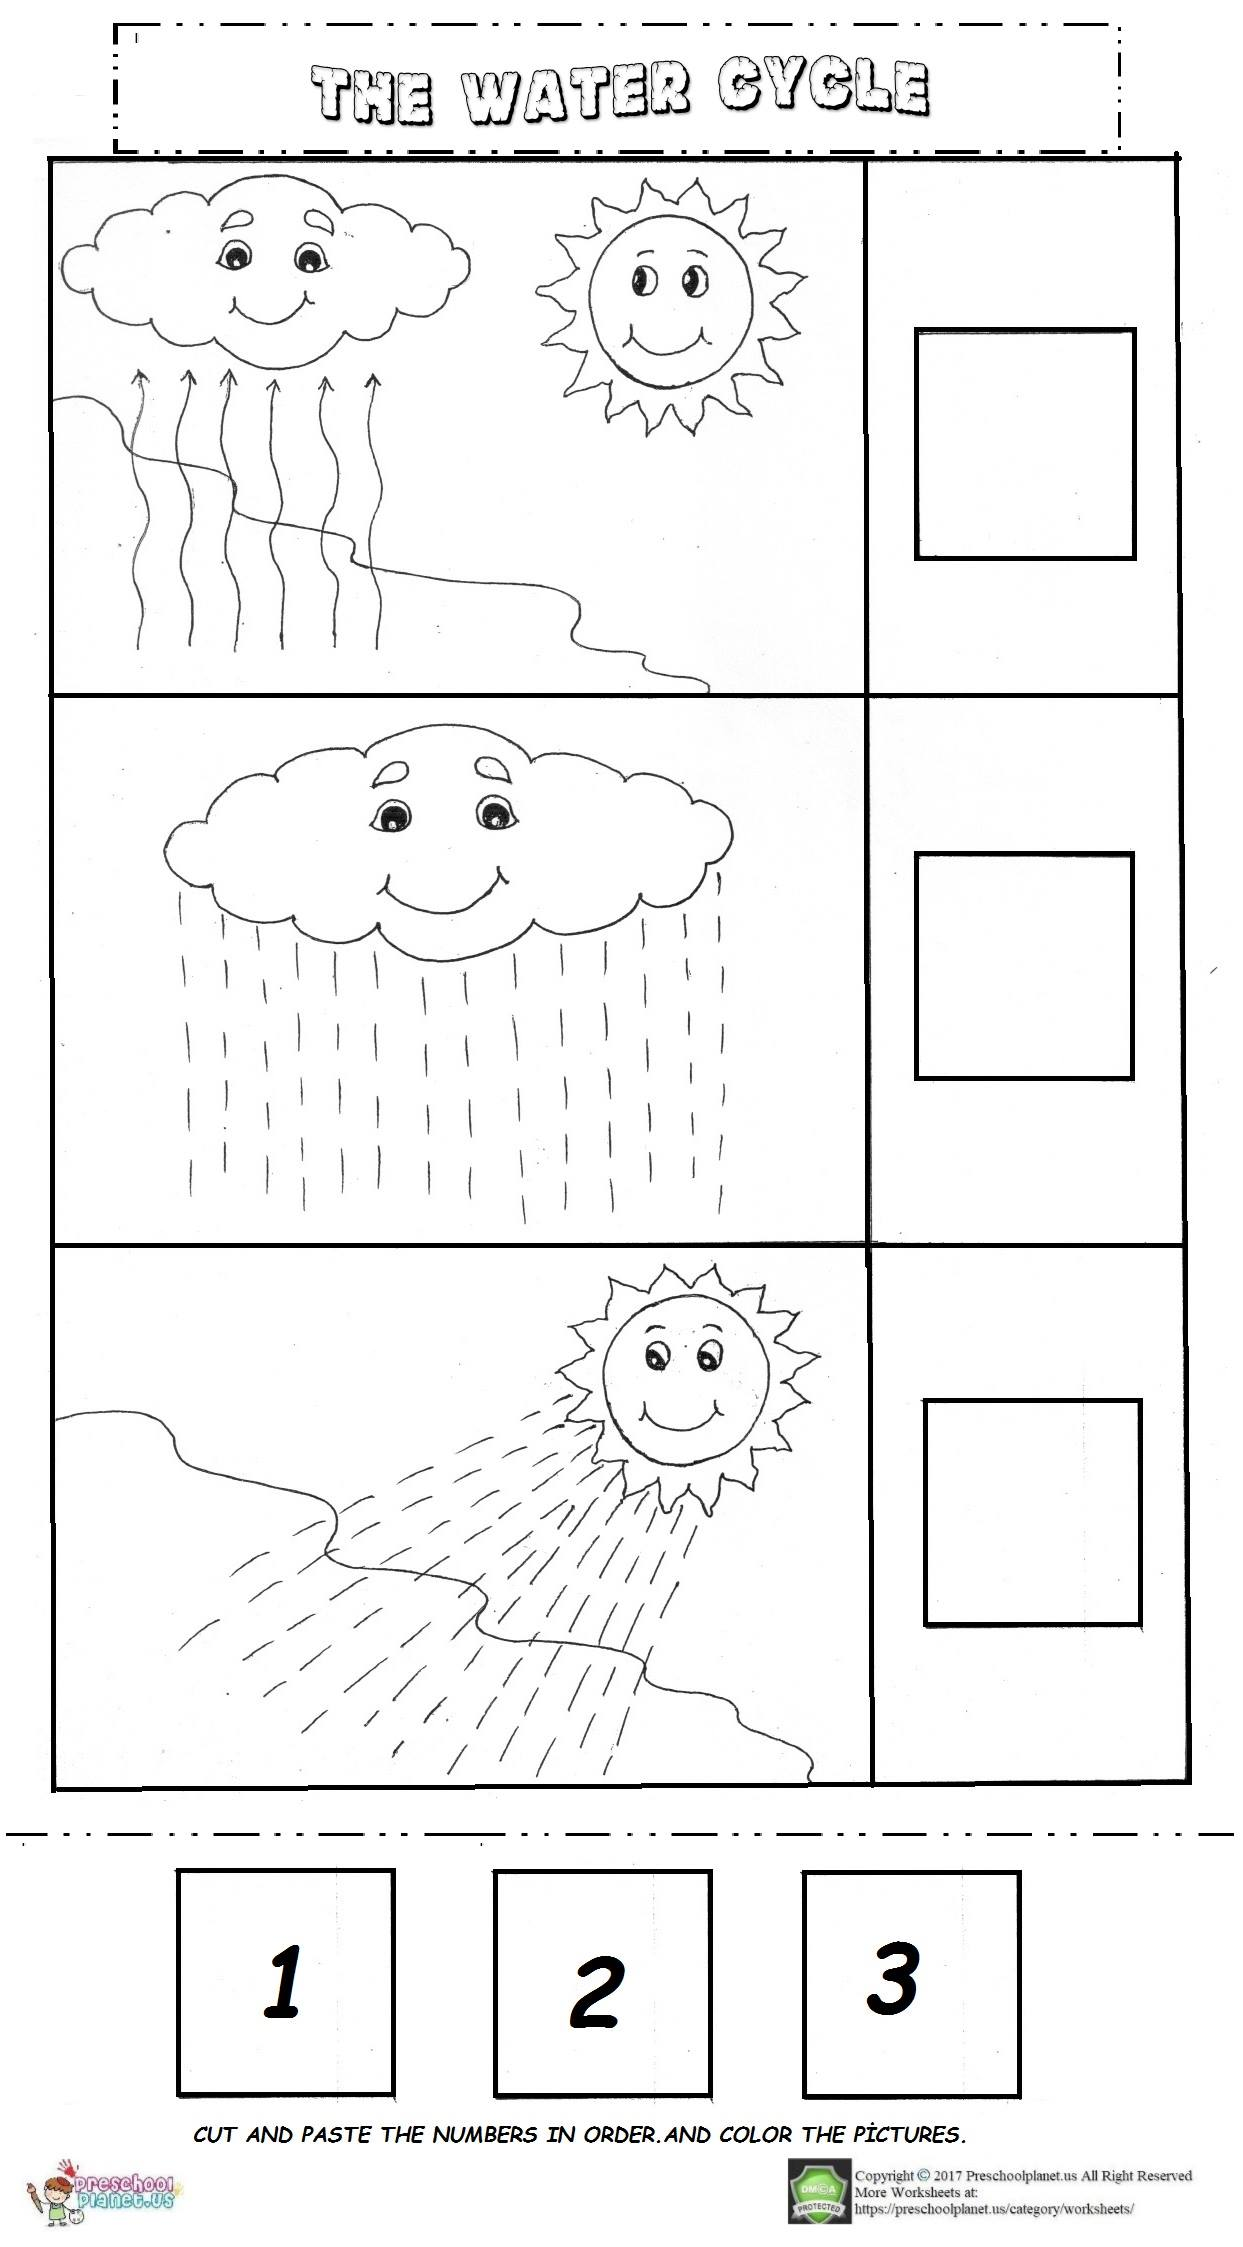 The Rain Cycle Worksheets